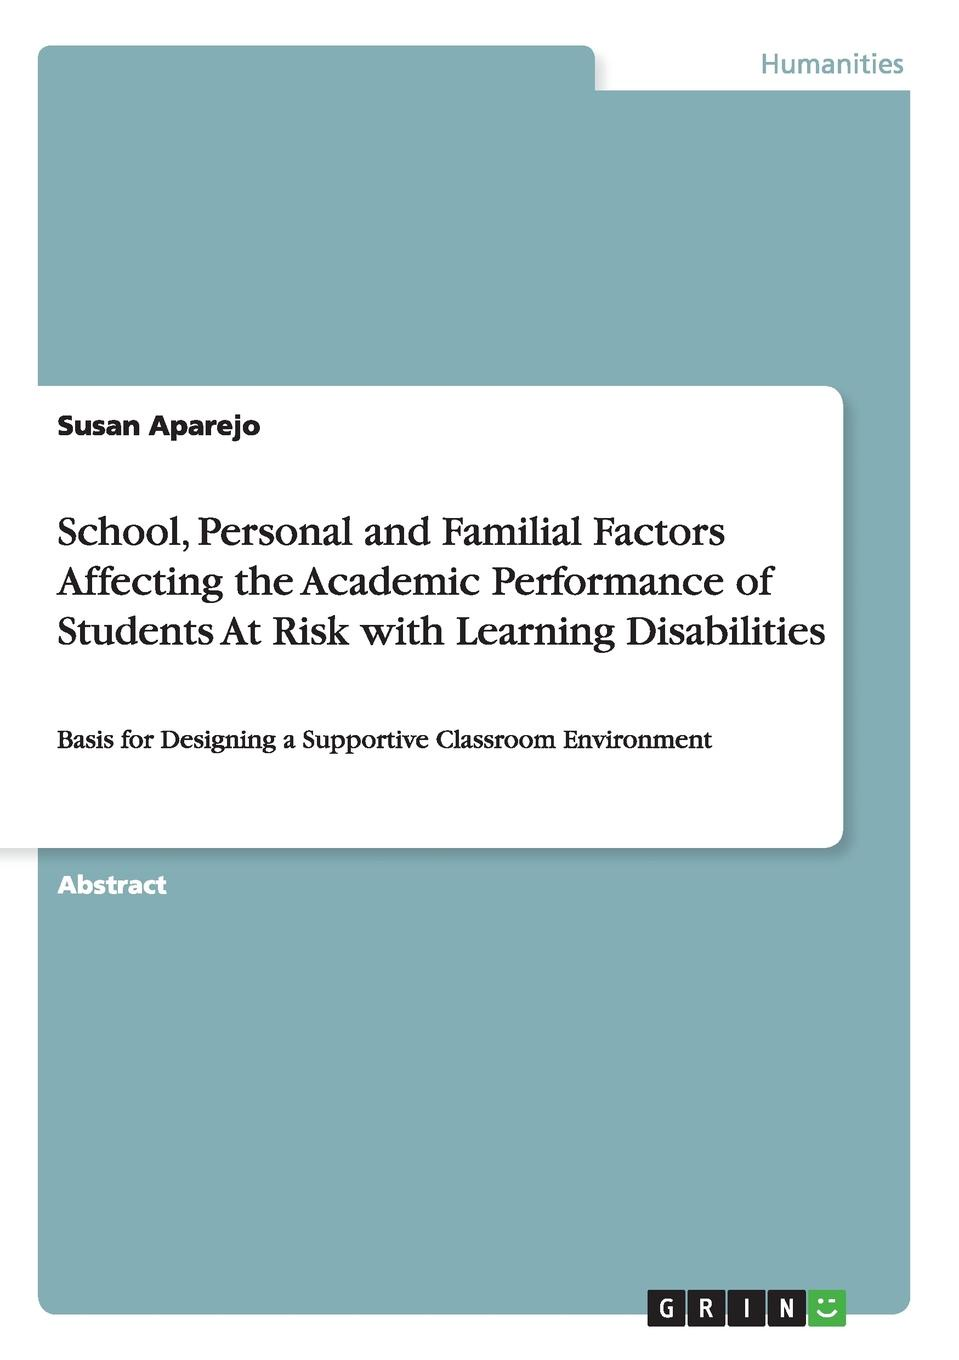 Susan Aparejo School, Personal and Familial Factors Affecting the Academic Performance of Students At Risk with Learning Disabilities rebecca jackson williams the complete learning disabilities handbook ready to use strategies and activities for teaching students with learning disabilities isbn 9781118937686